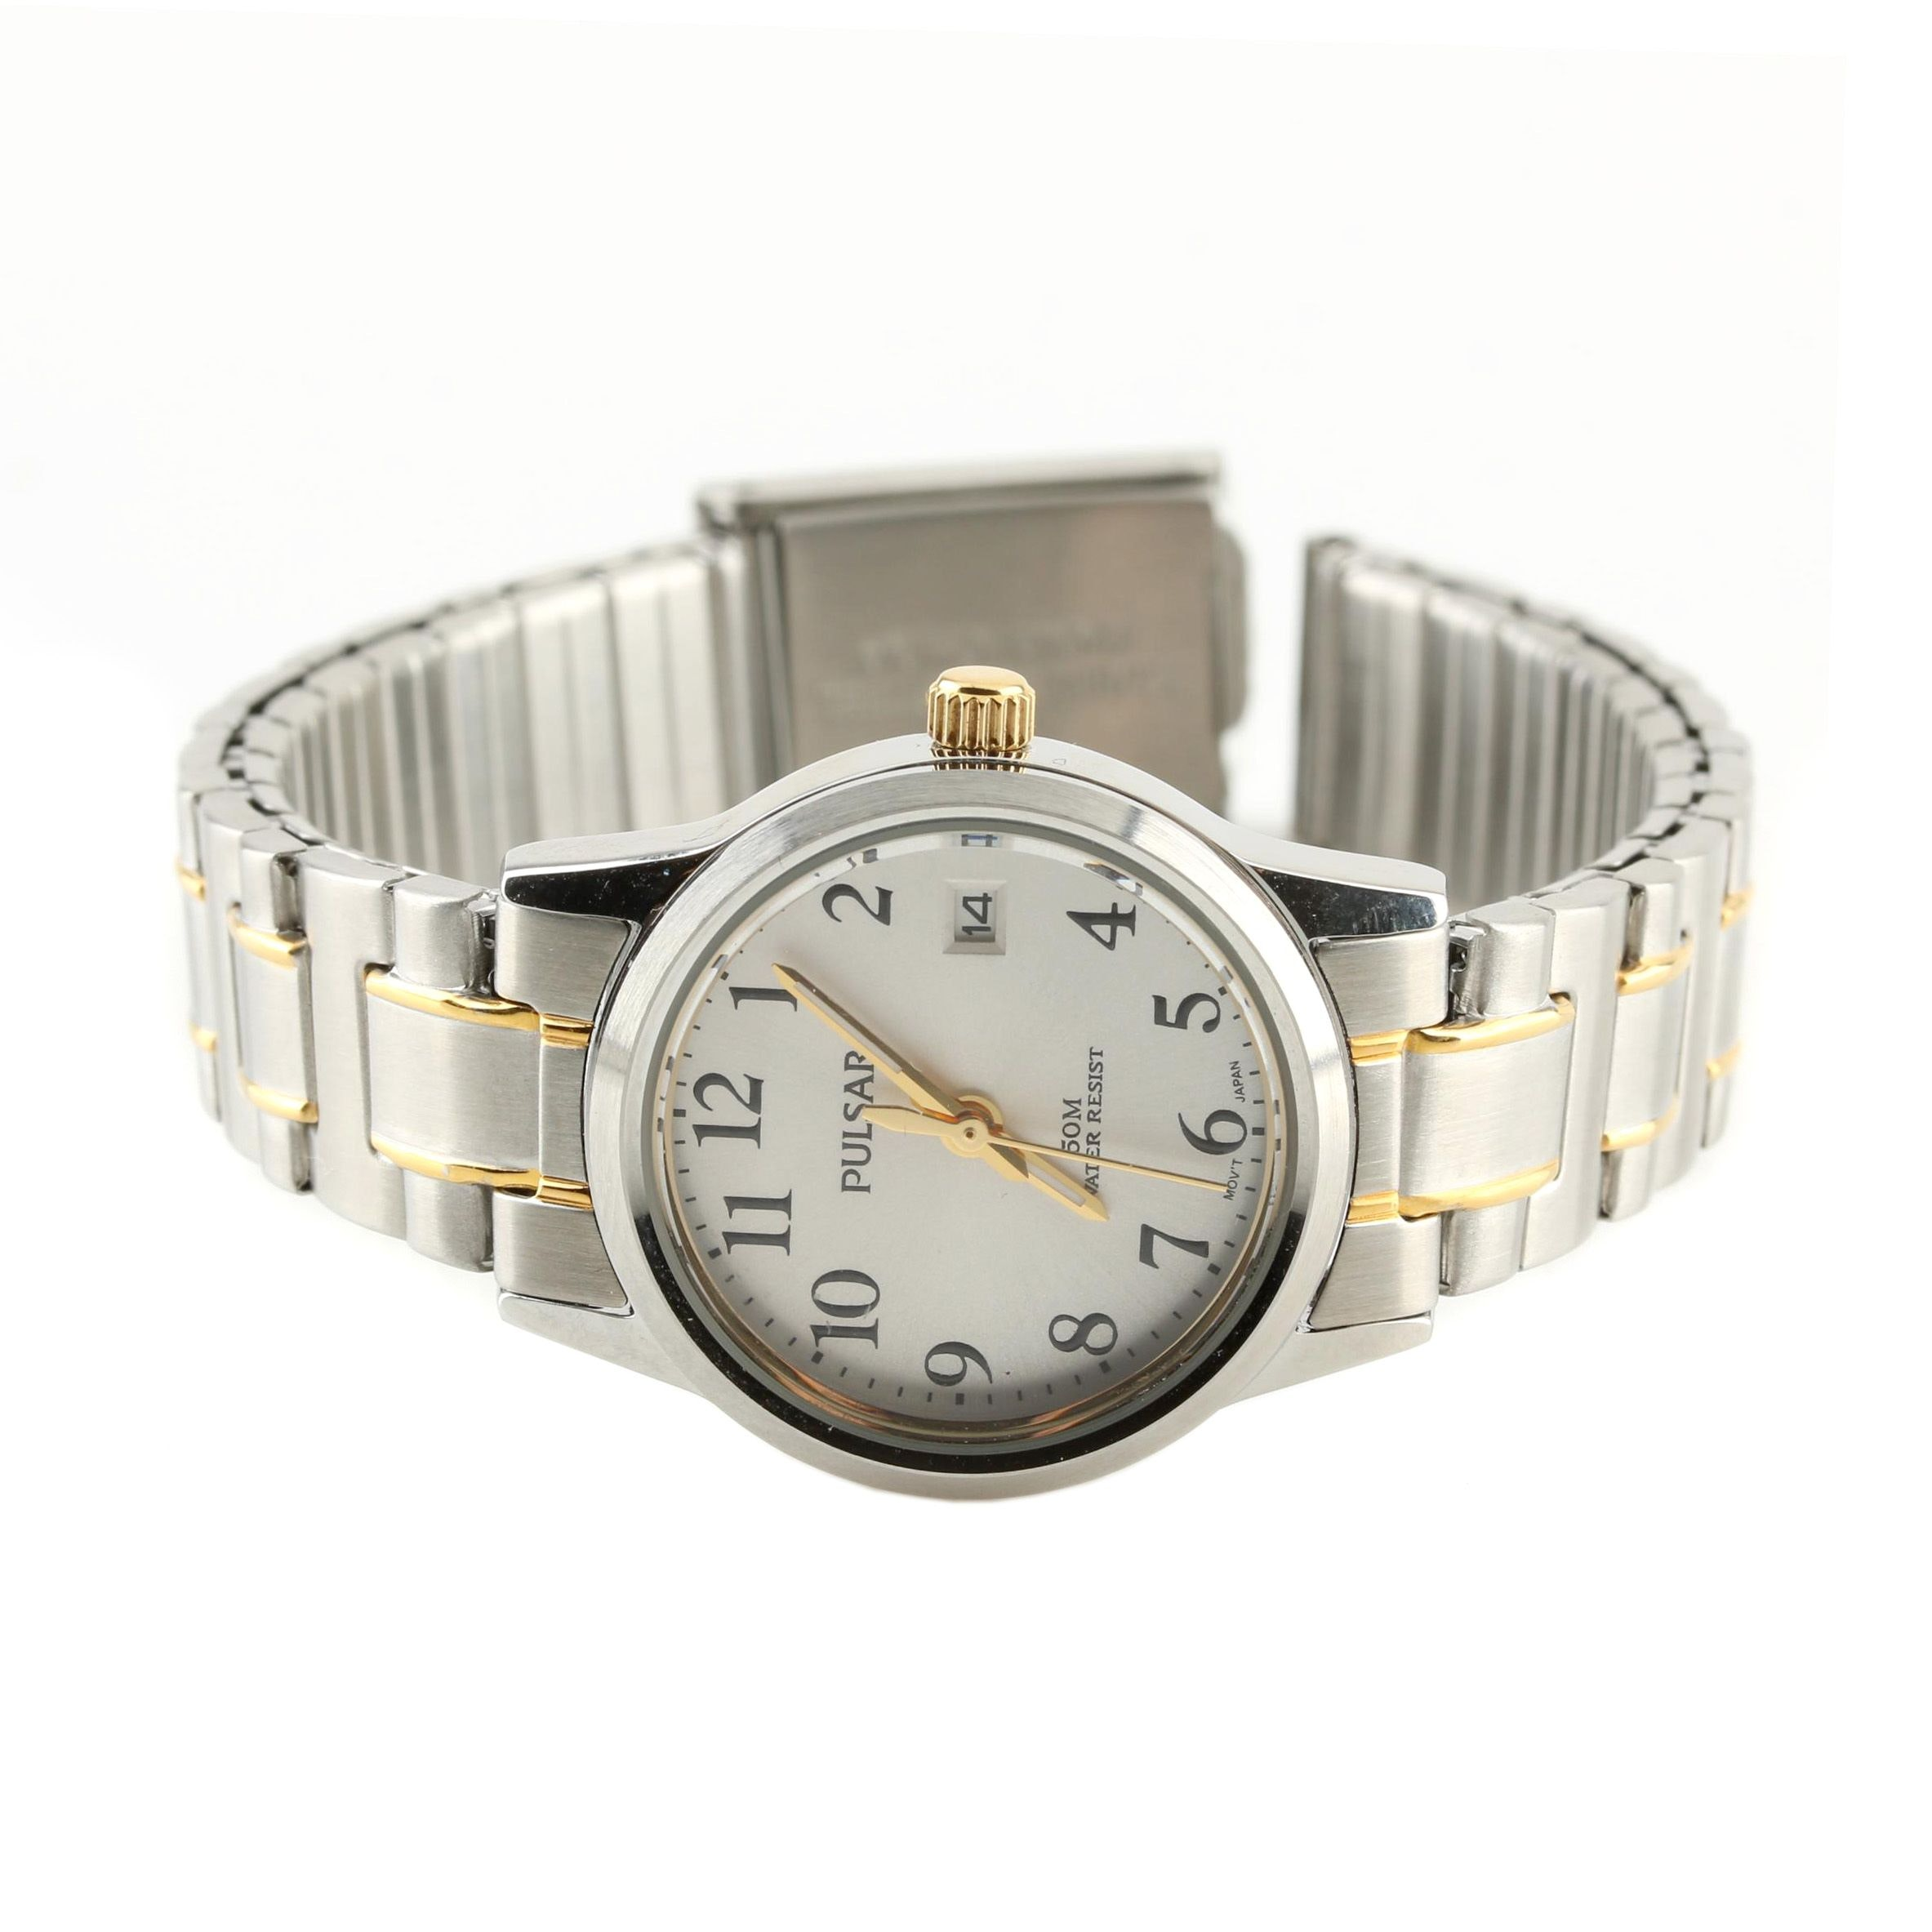 Pulsar Stainless Steel and Base Metal Water Resistant Wristwatch